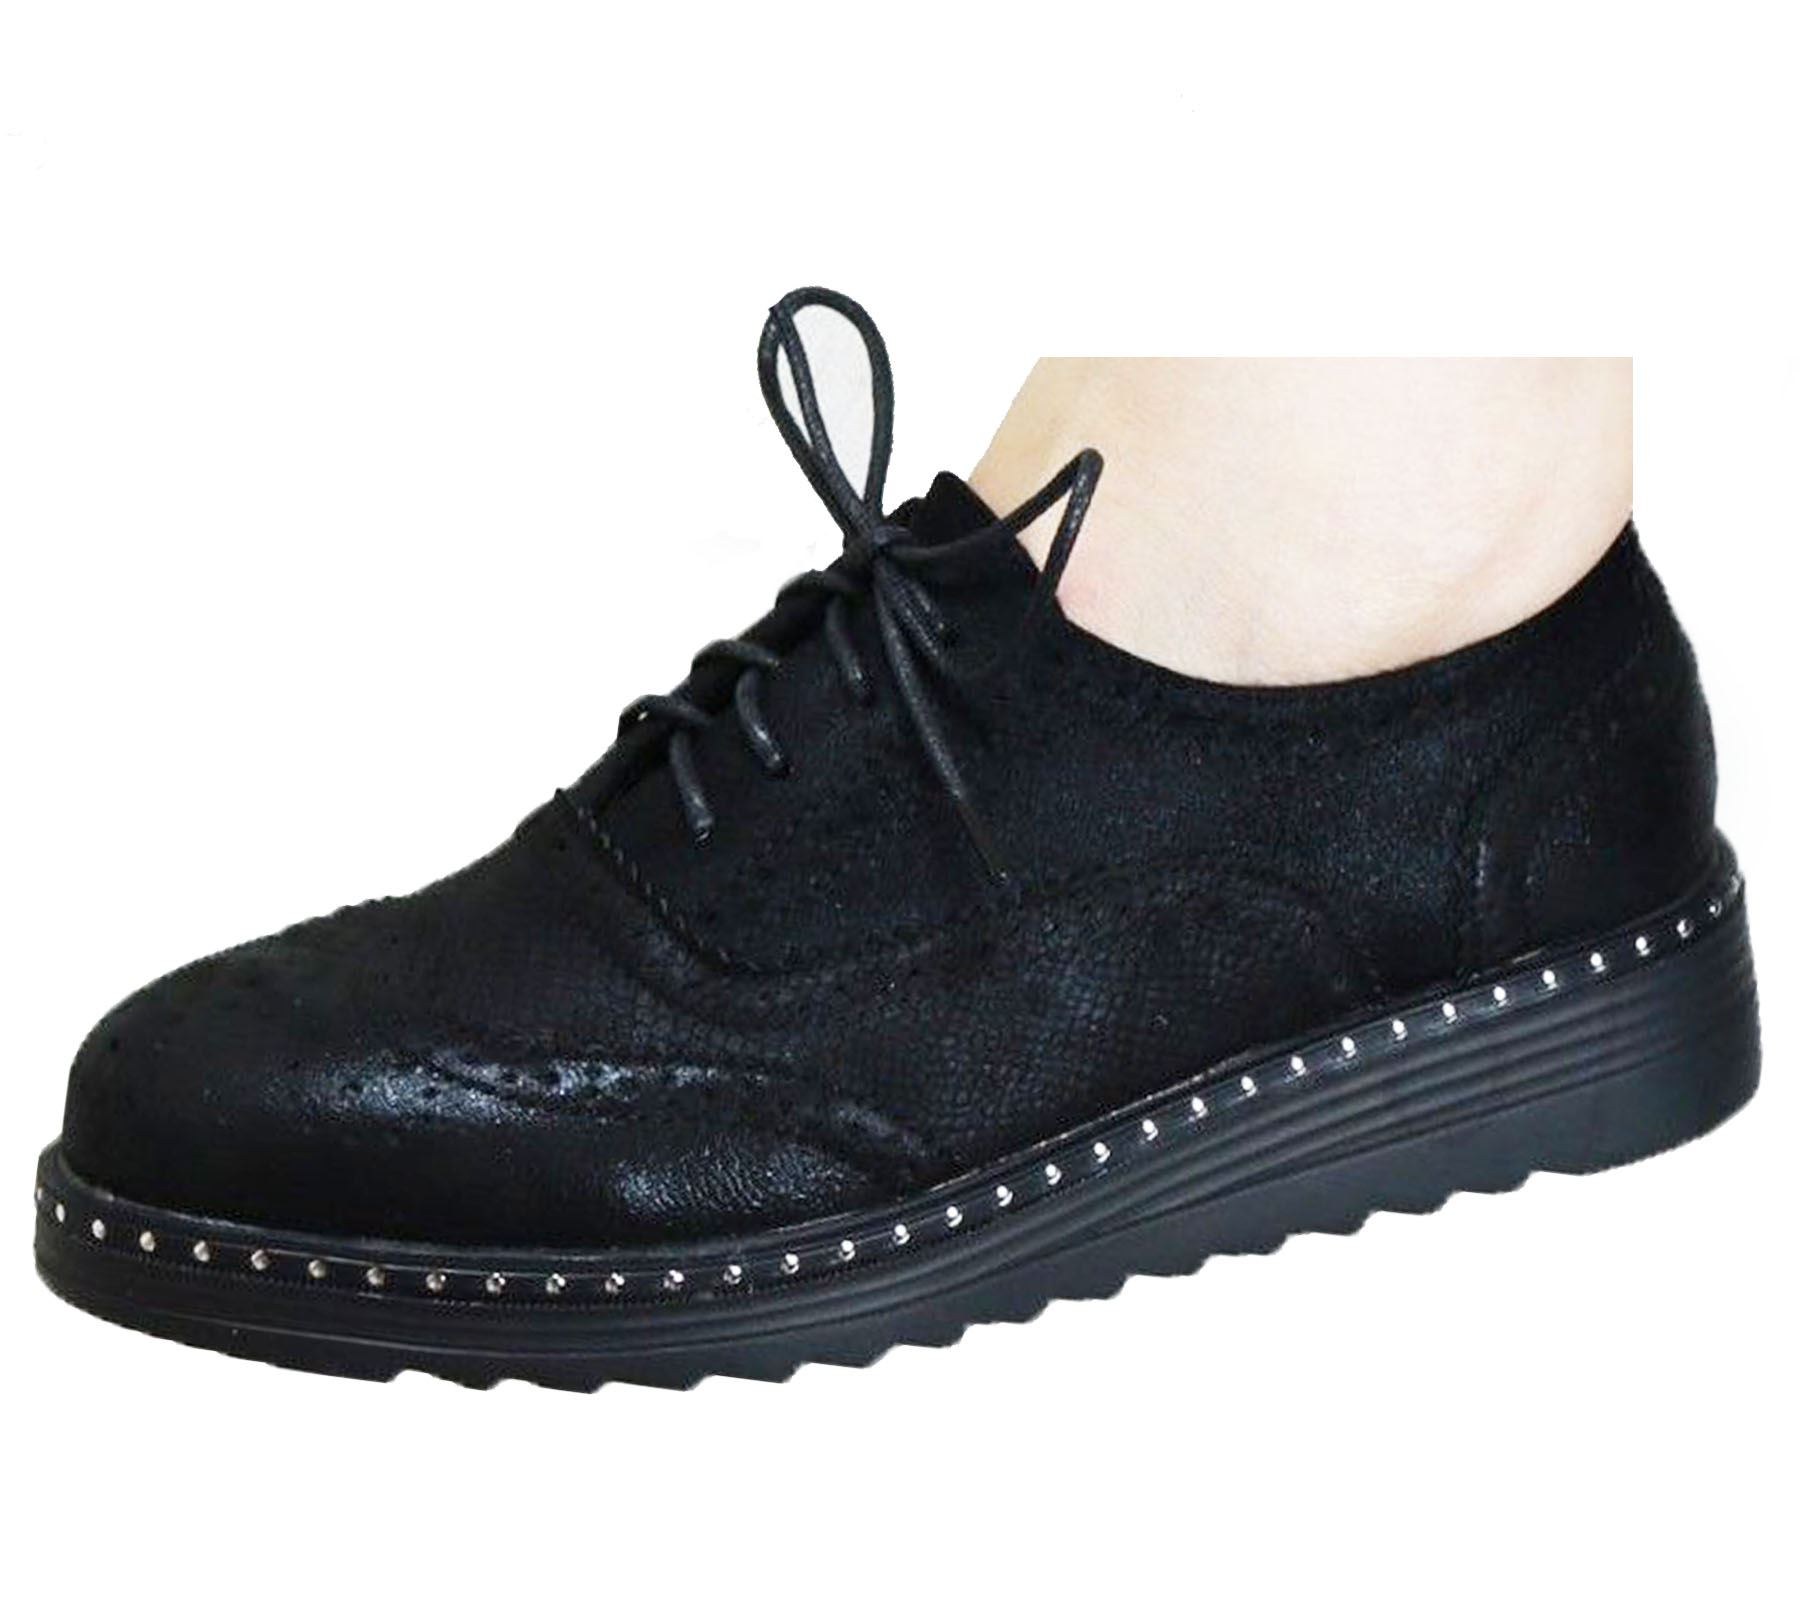 Ladies-Brogue-Lace-Up-Shoes-Womens-Oxford-Smart-Office-Loafers-Shoes miniatura 6